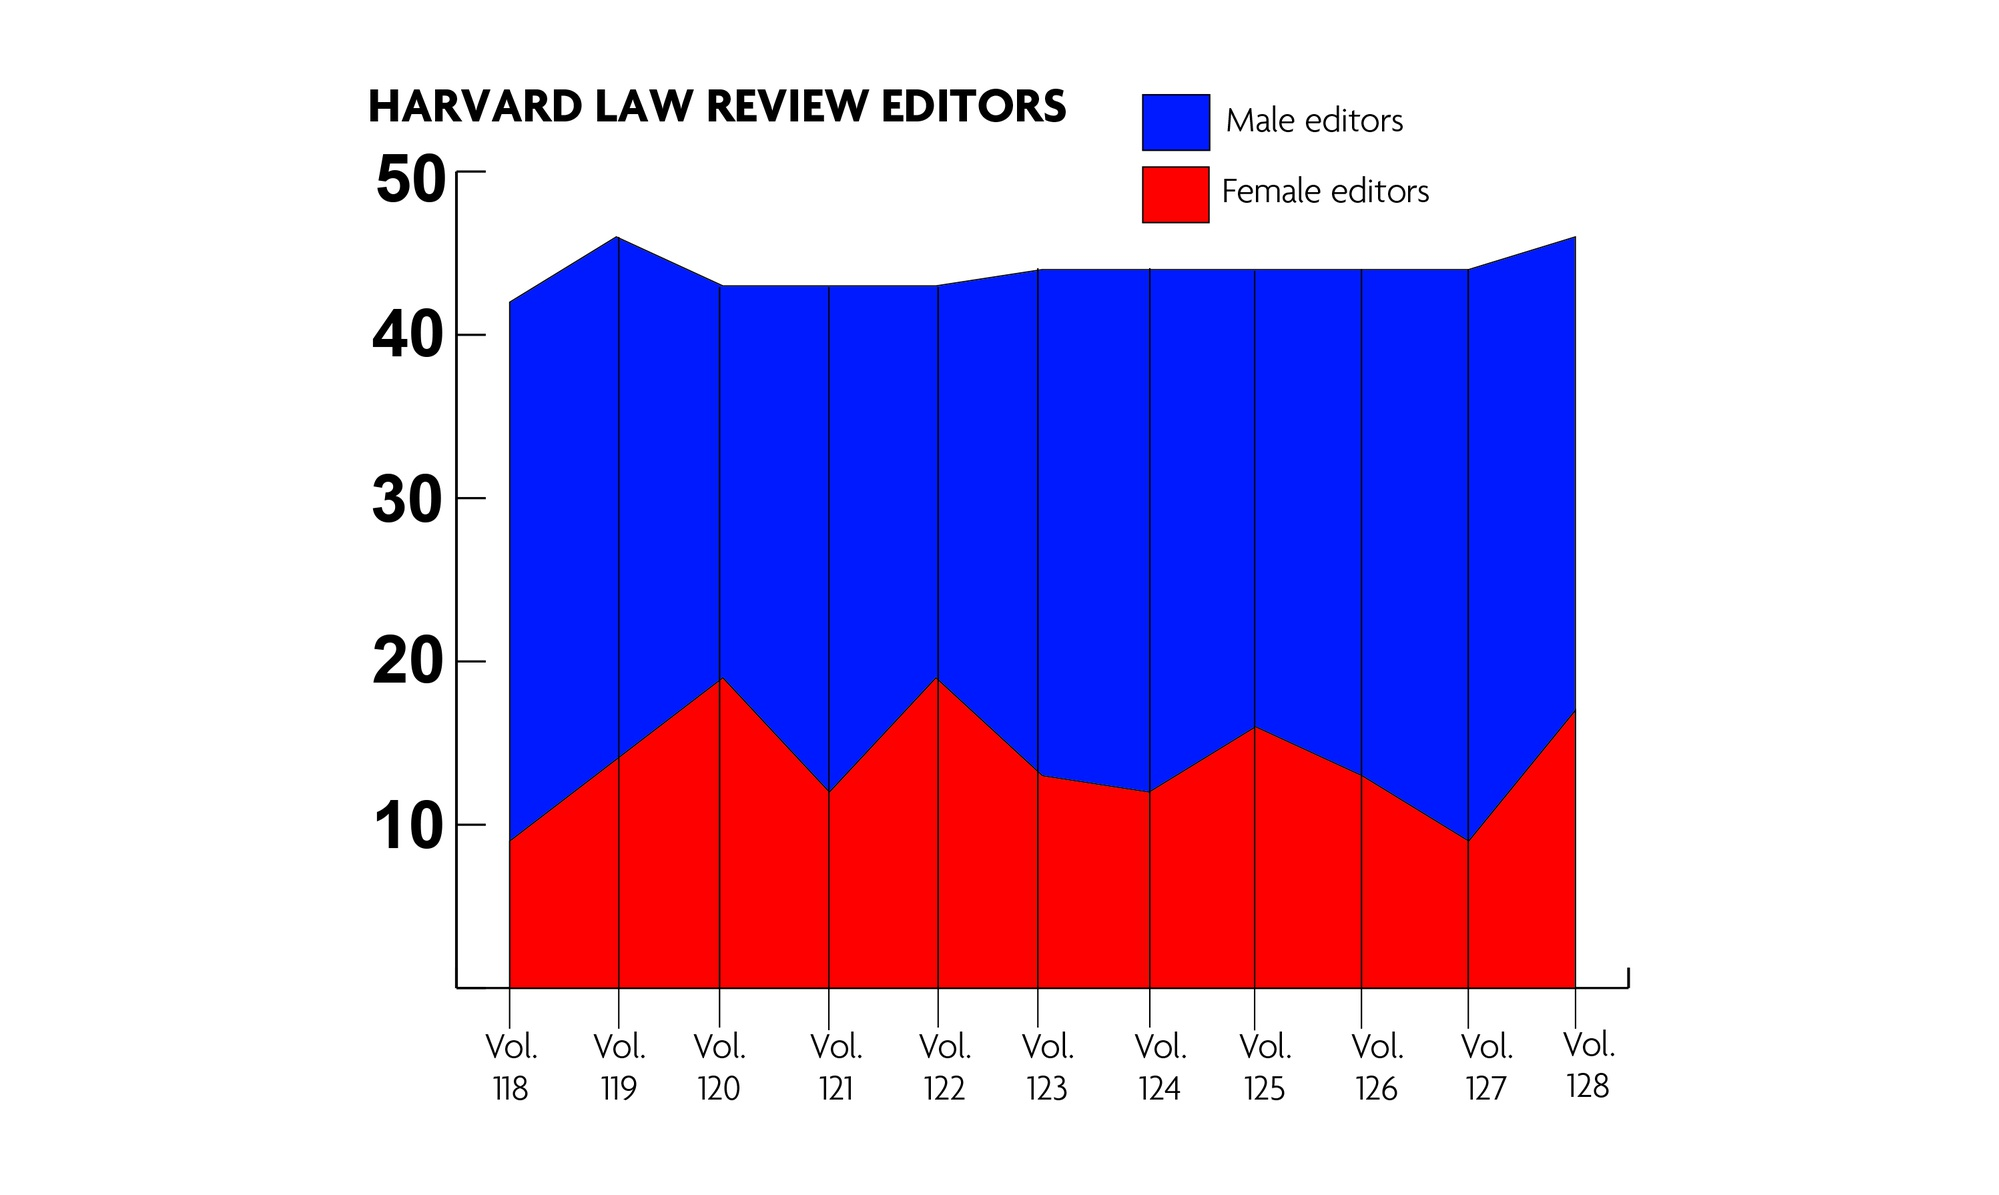 In addition to expanding the size of the board to 46 editors, the Law Review instituted a new gender component to its affirmative action policy. The newest board has more female editors than any volume since volume 122 in 2007.